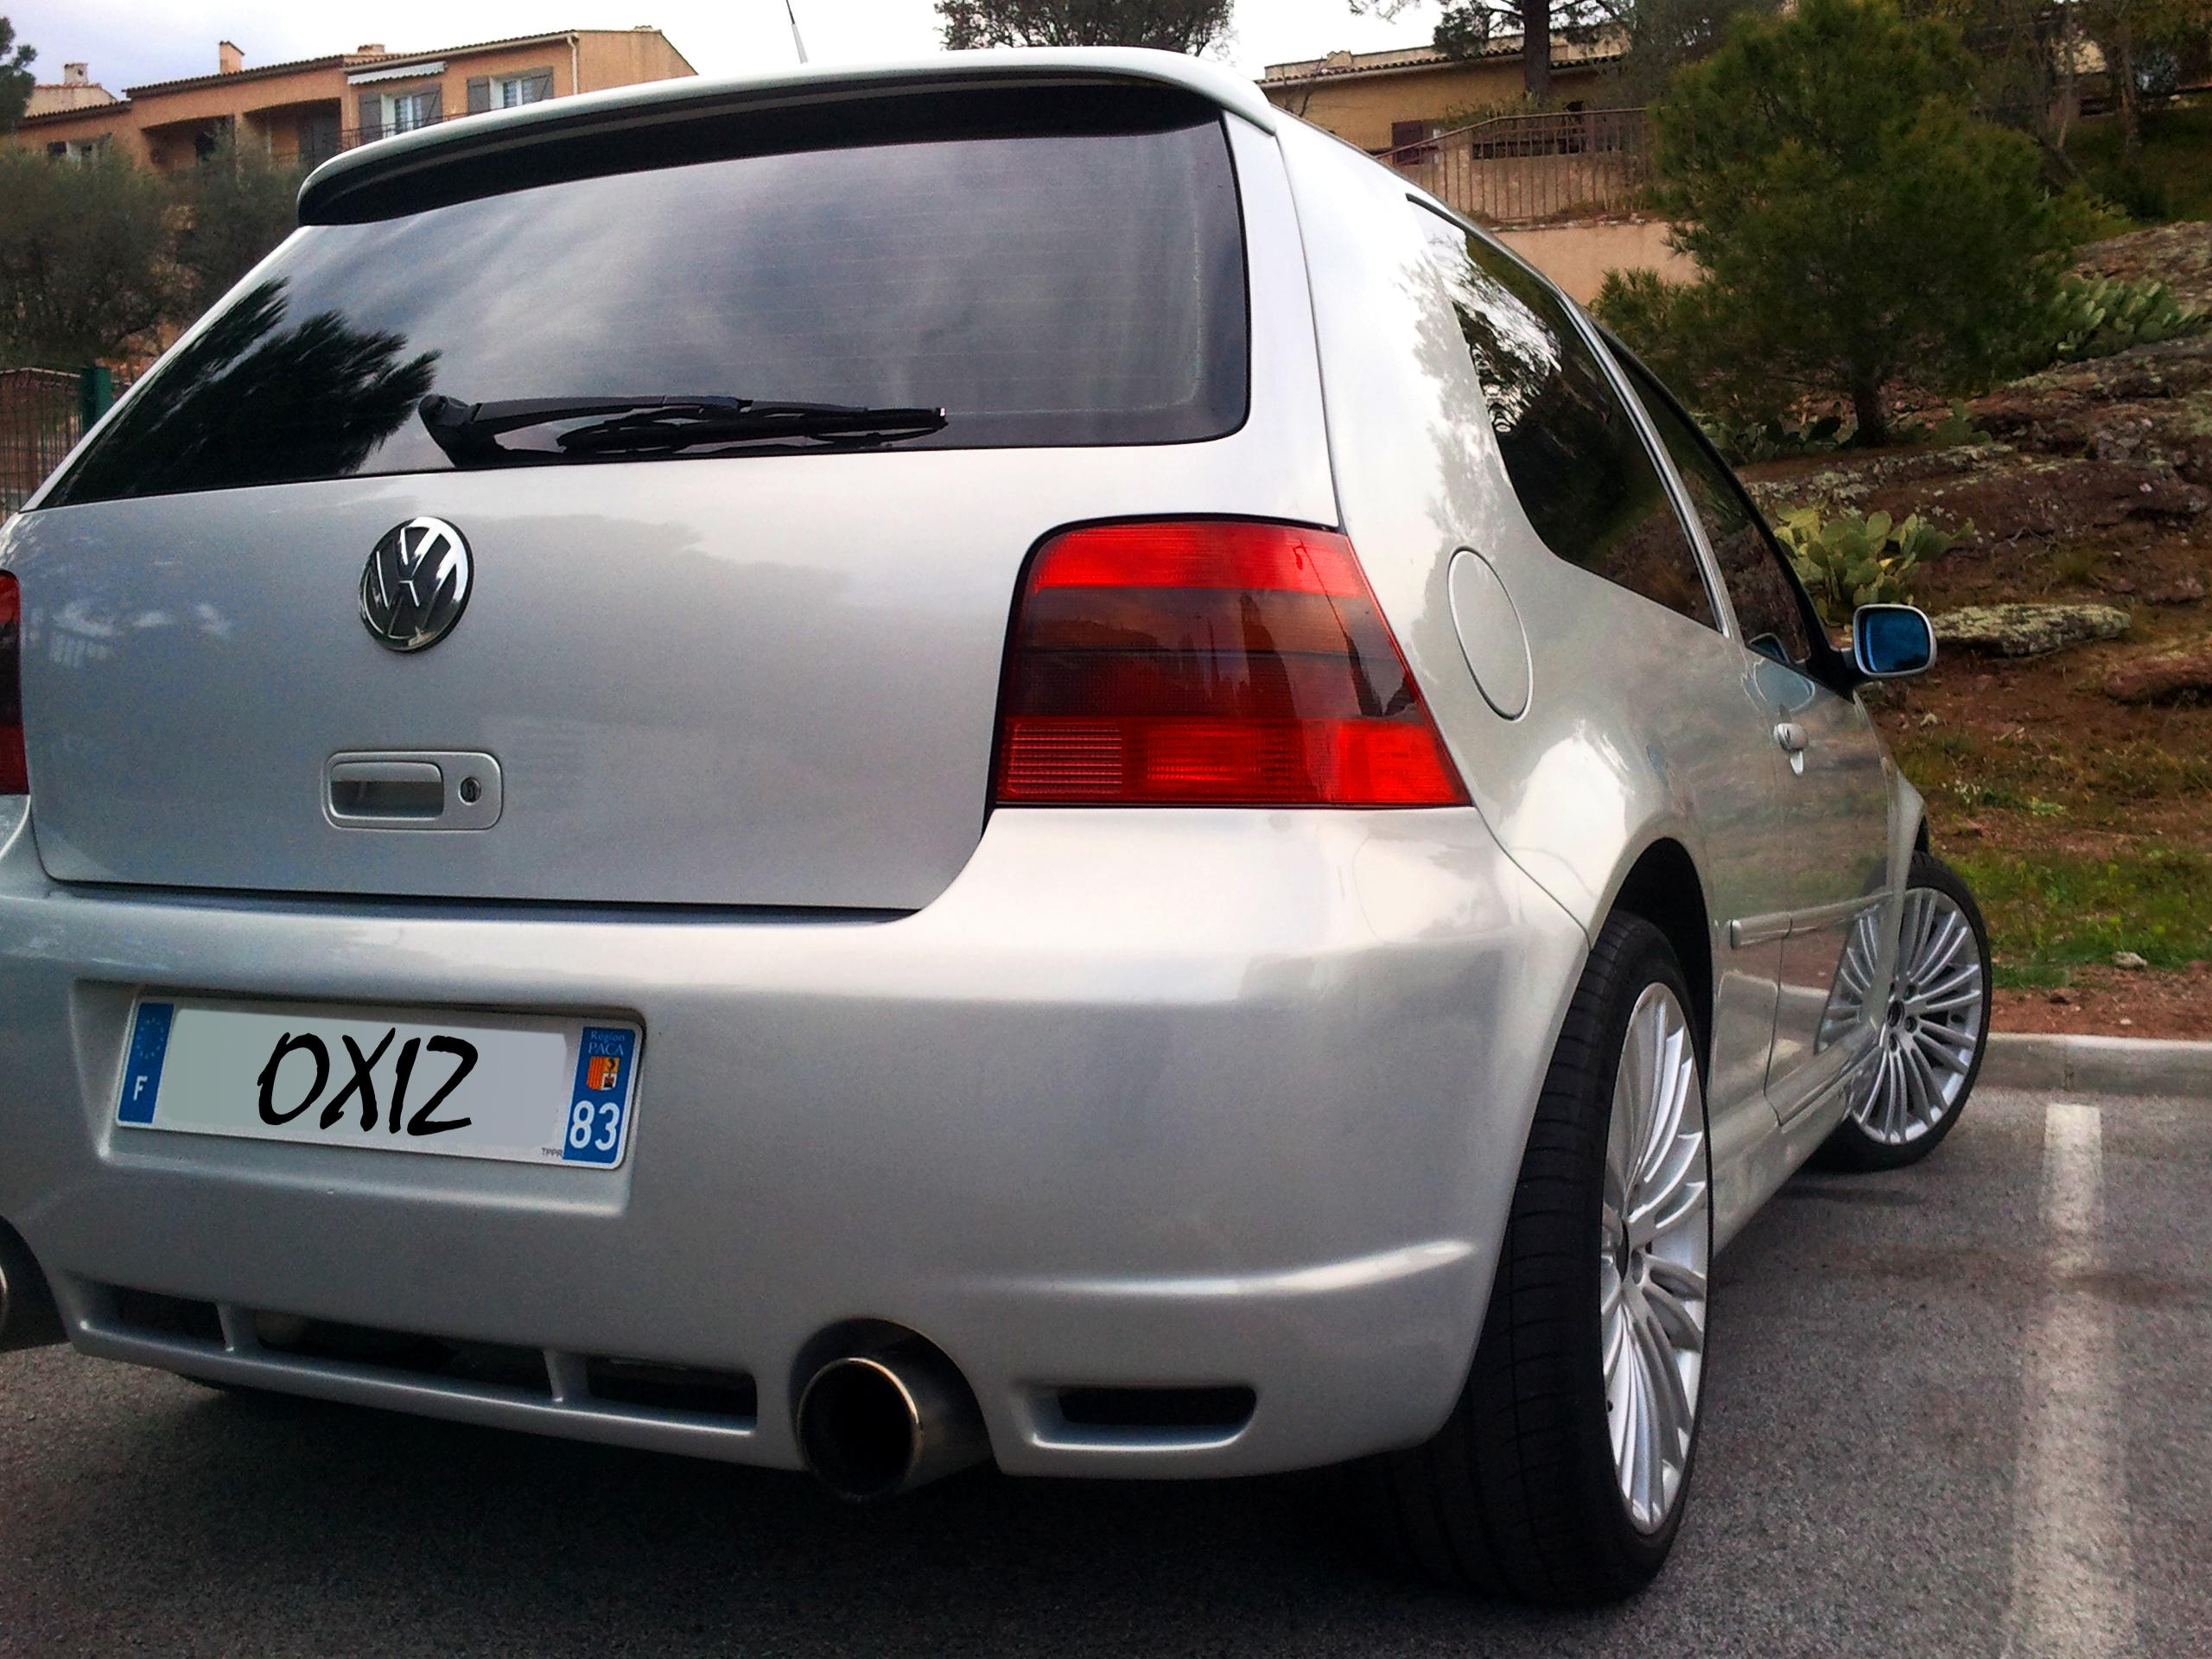 Golf4 1 8t 20v de oxiz garage des golf iv 1 8 1 8 for Garage volkswagen biarritz